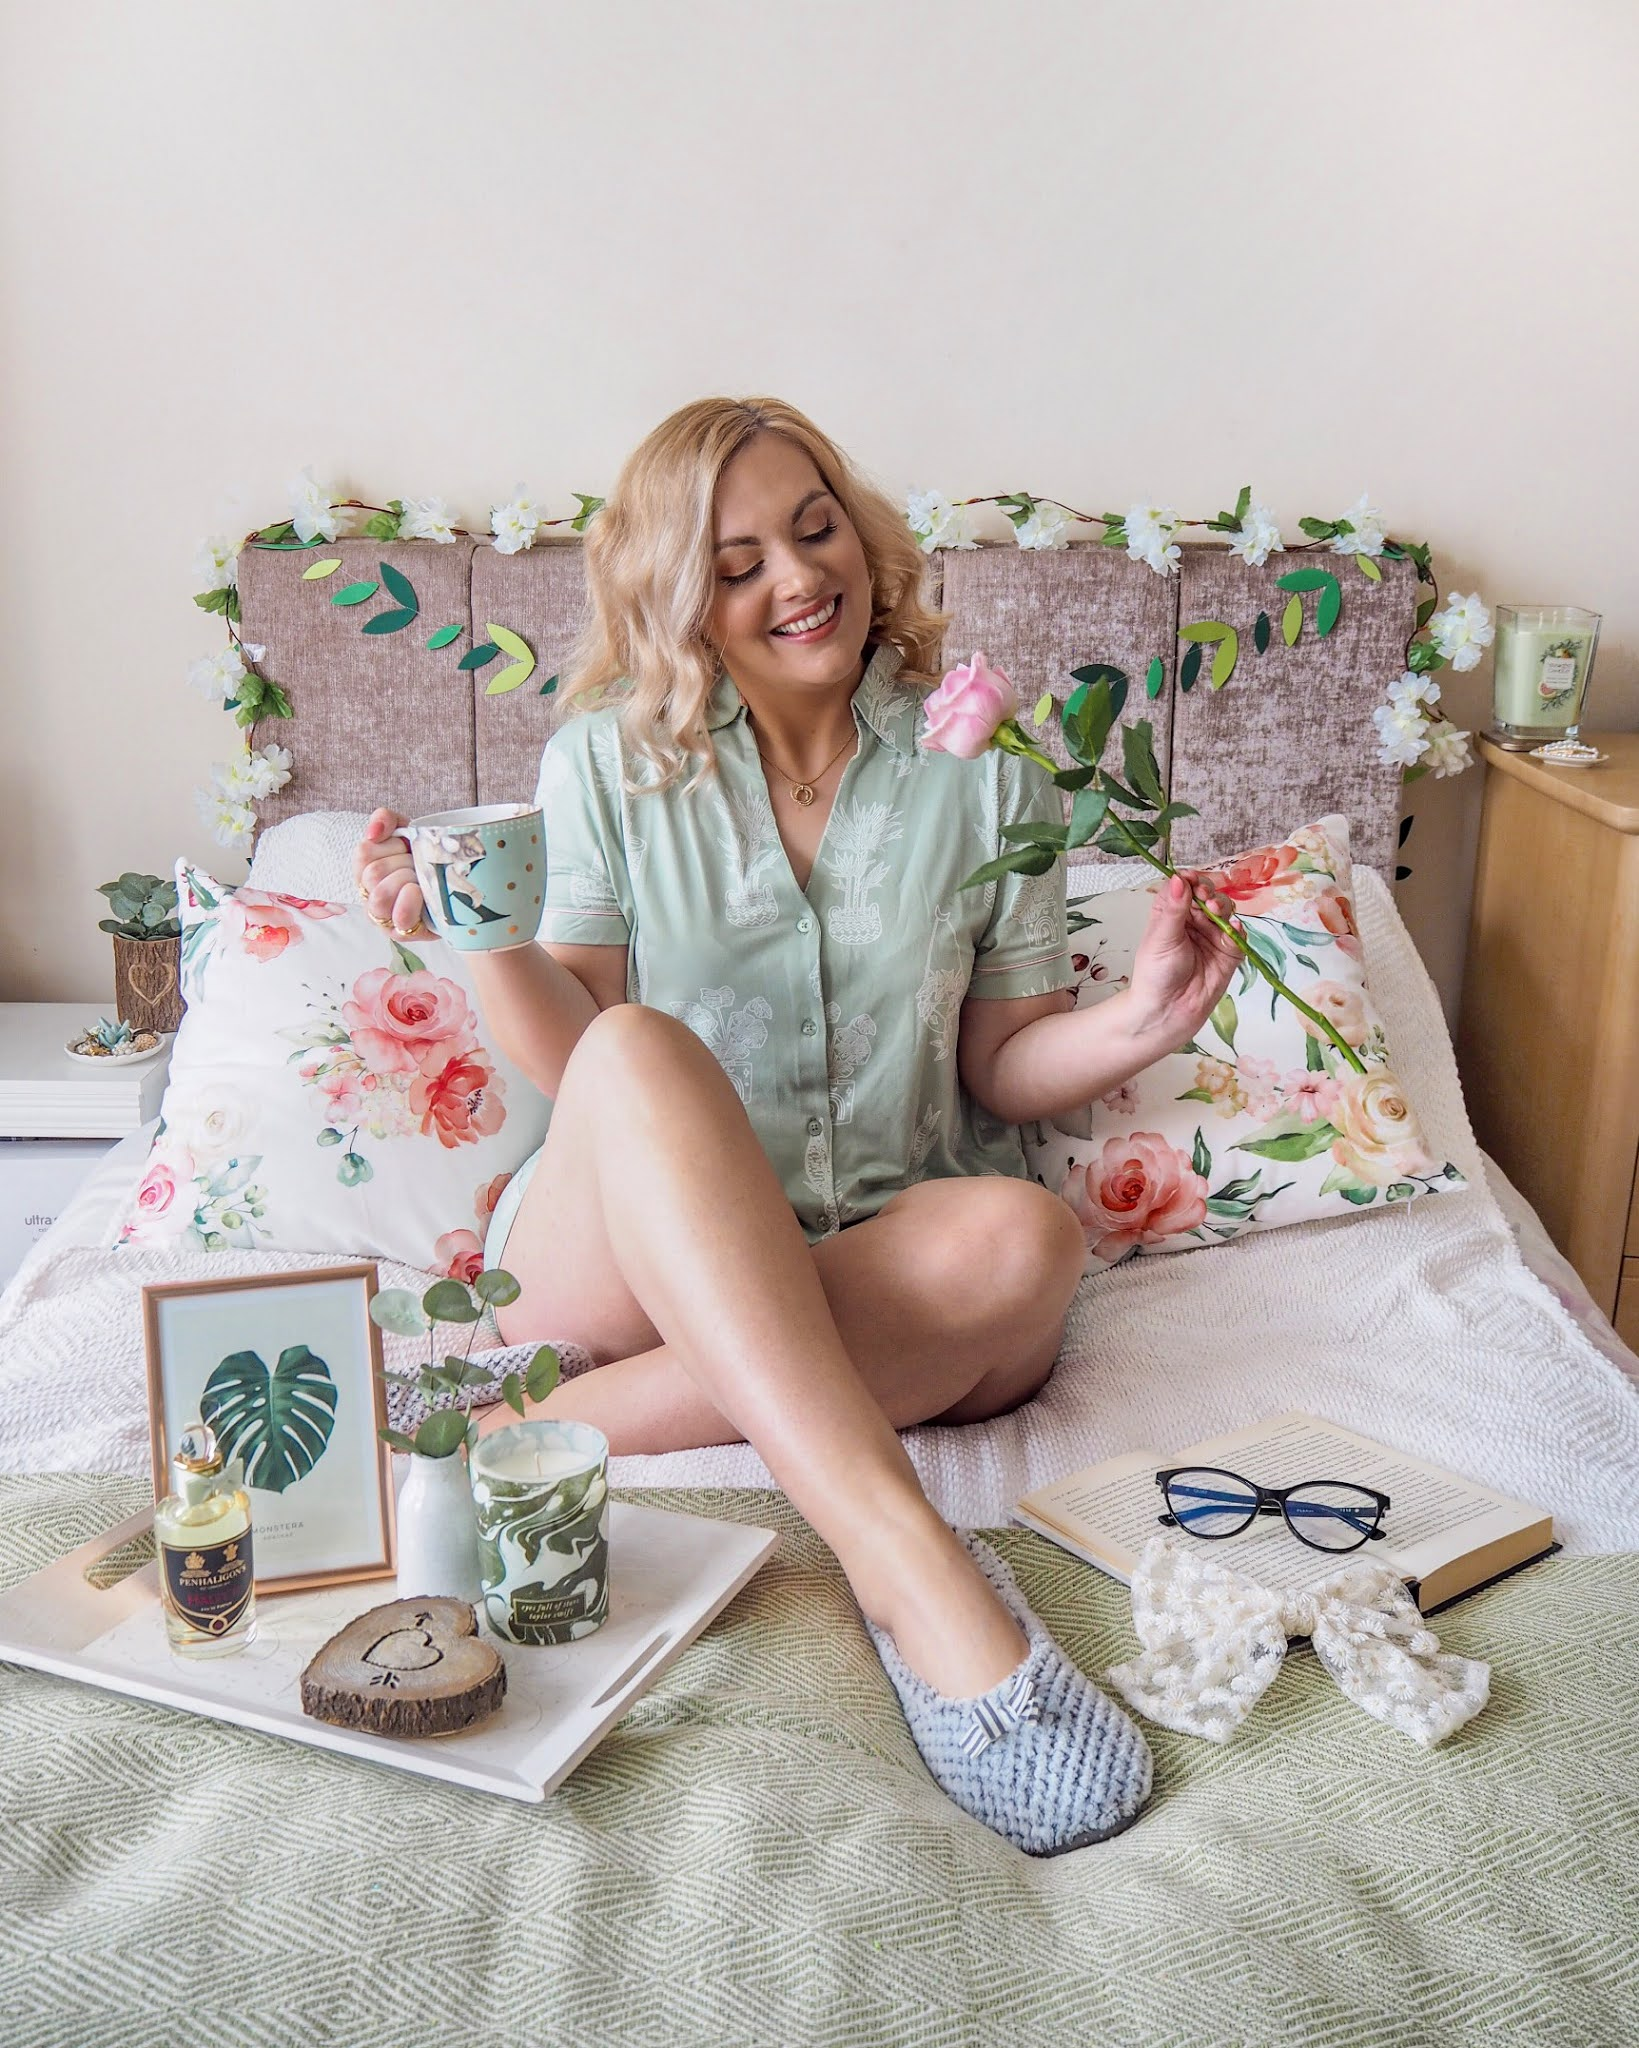 Spring Photography Props & Home Decor, Girl sitting on a bed in sage green pyjamas holding a rose and a mug of tea there are lots of floral spring props like cushions and flower garlands around her.